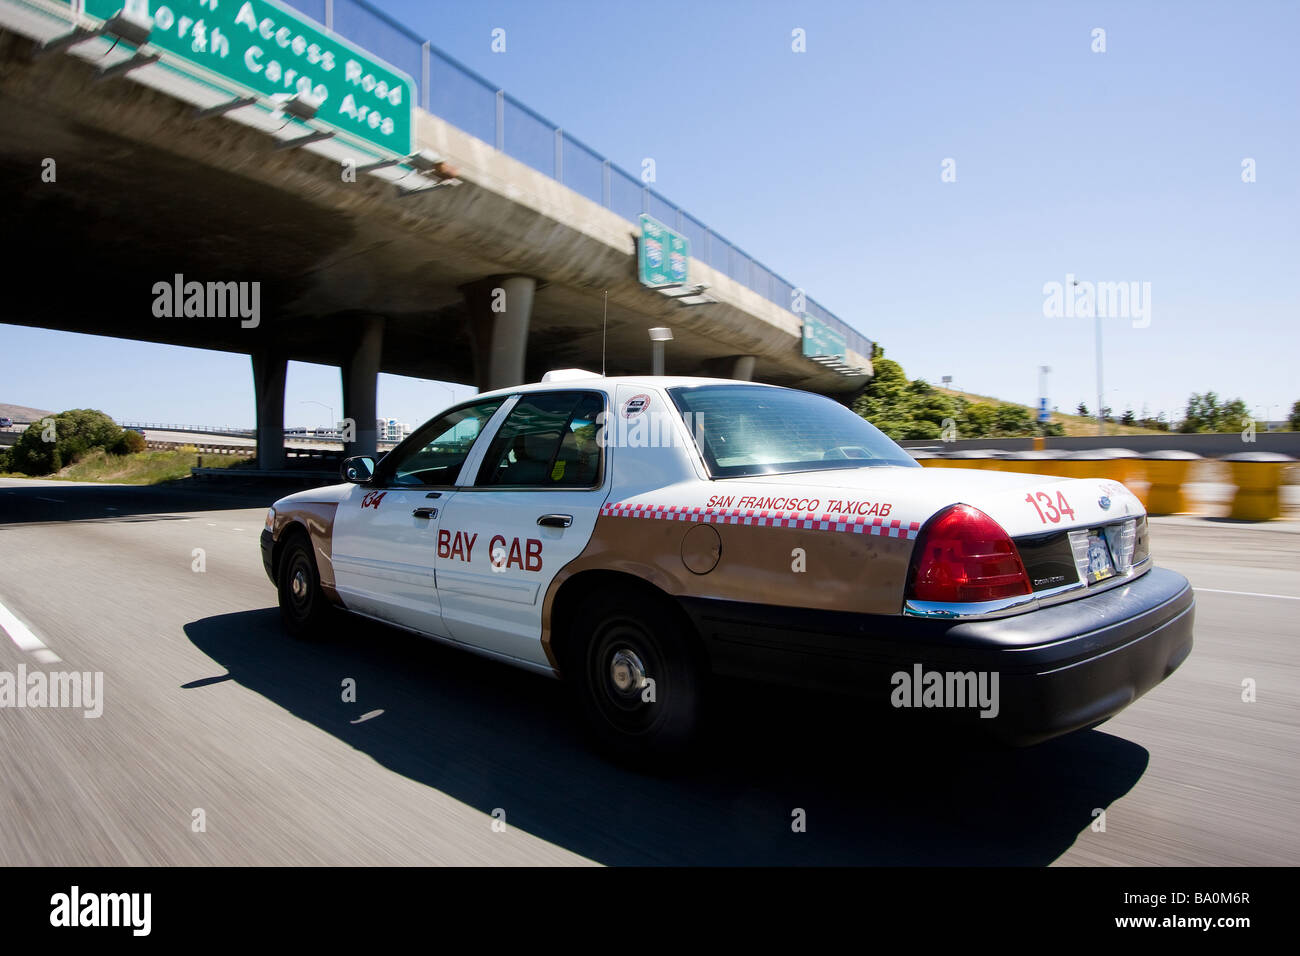 A taxi on the 101 highway North, San Francisco, California, USA - Stock Image